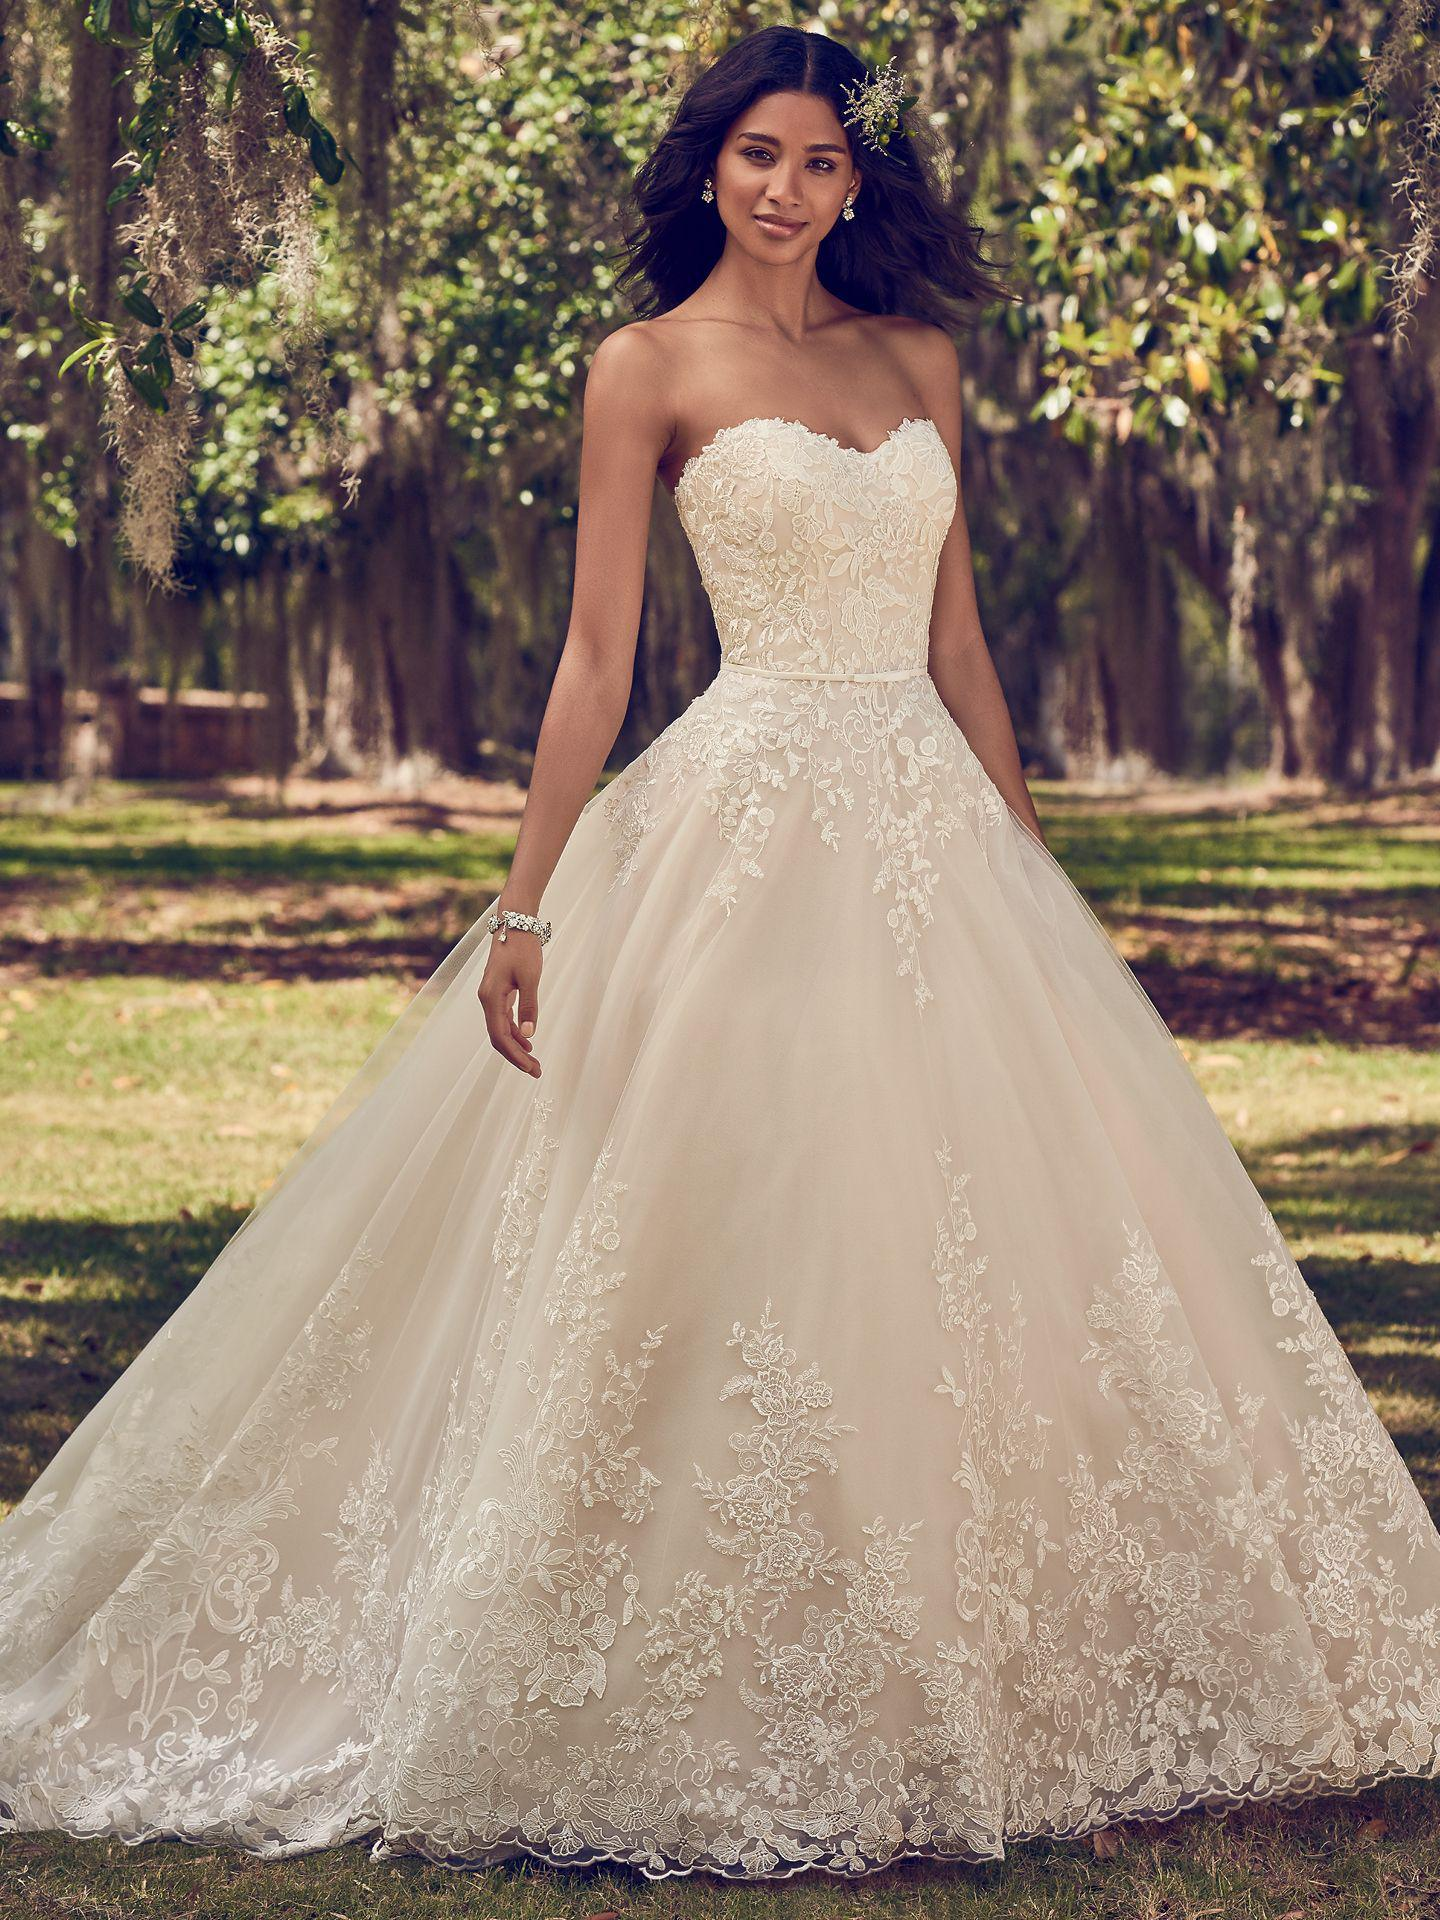 2019/18. Maggie Sottero - VIOLA, All Ivory, PlusSize:44